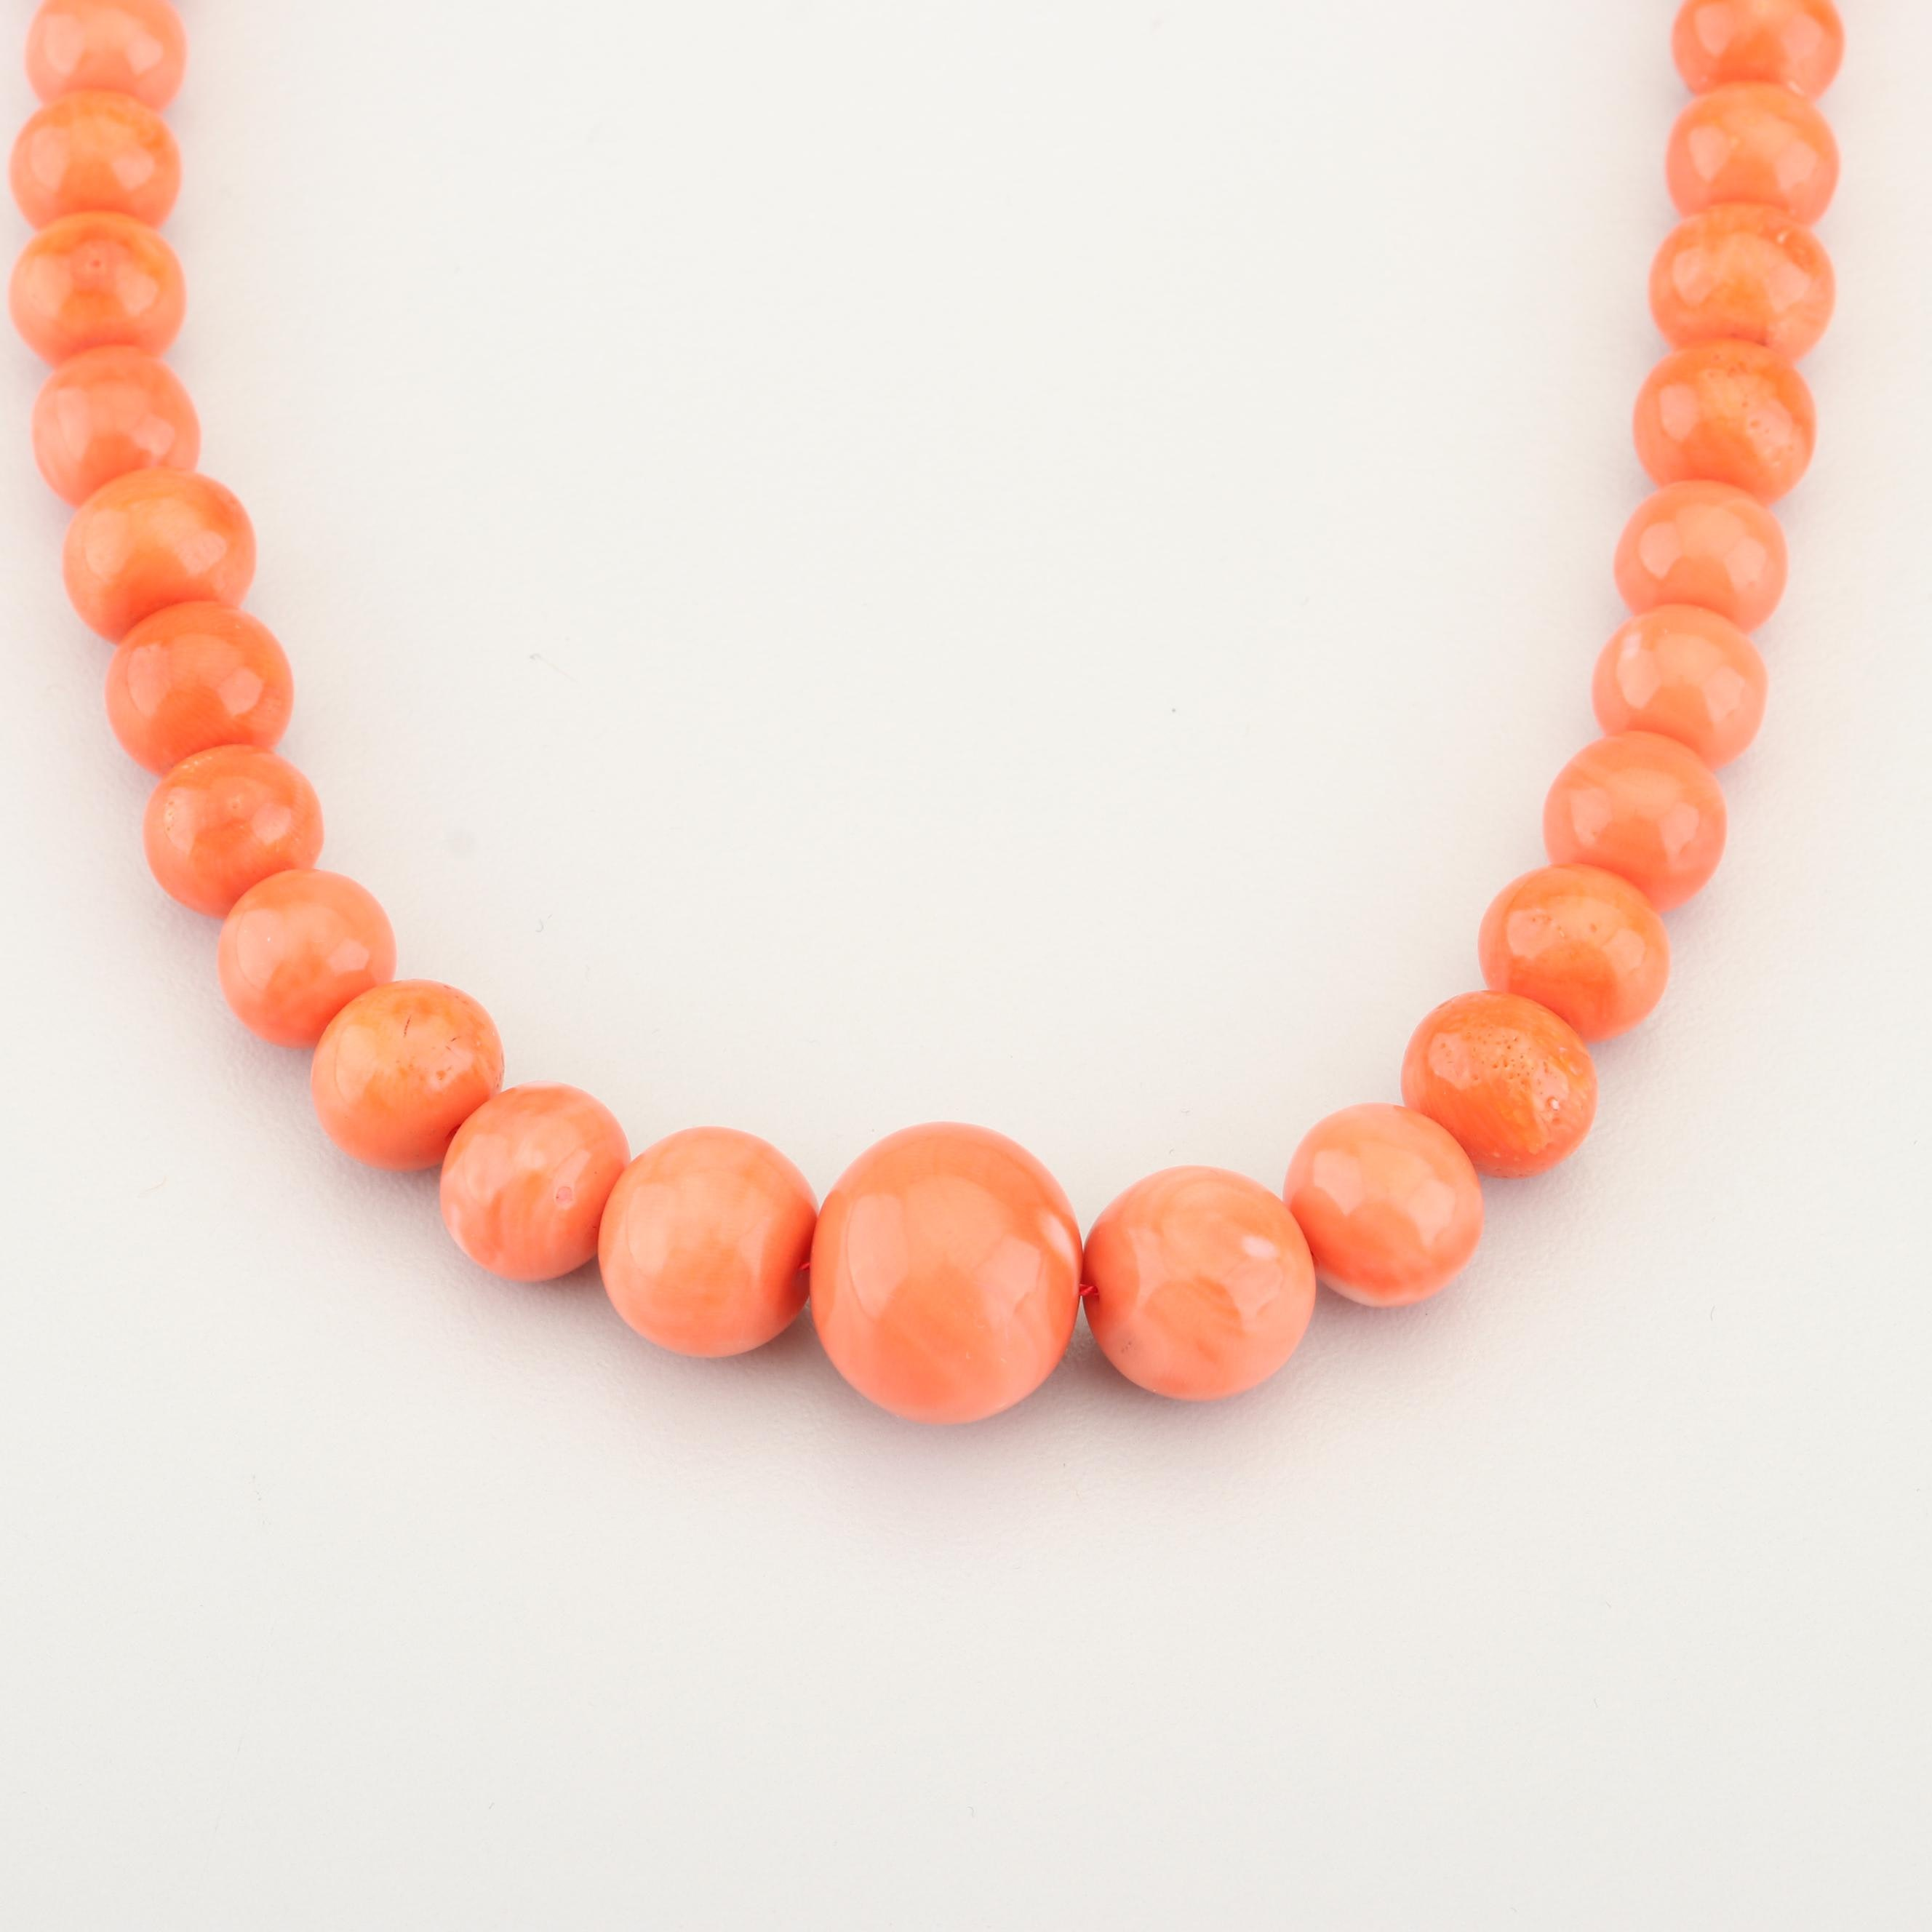 Pink Coral Graduated Bead Necklace with 14K Yellow Gold Clasp